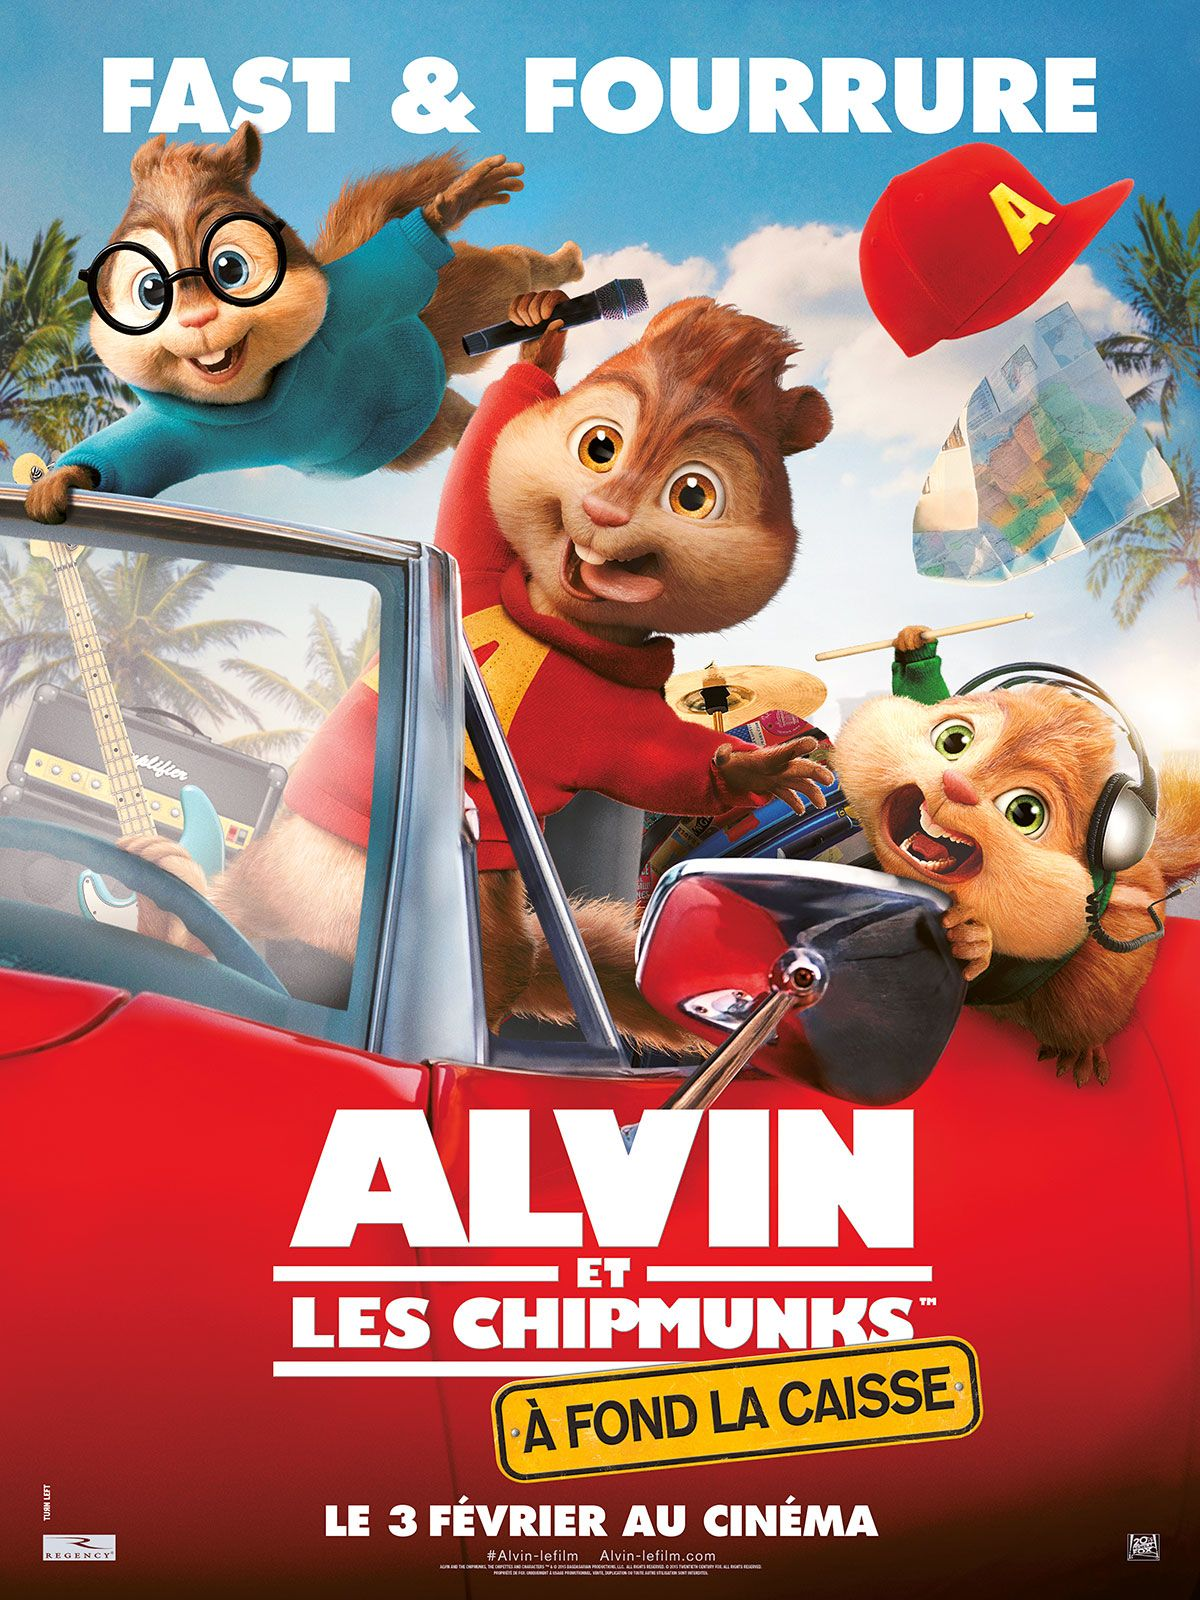 alvin et les chipmunks a fond la caisse streaming complet regarder alvin et les chipmunks a. Black Bedroom Furniture Sets. Home Design Ideas